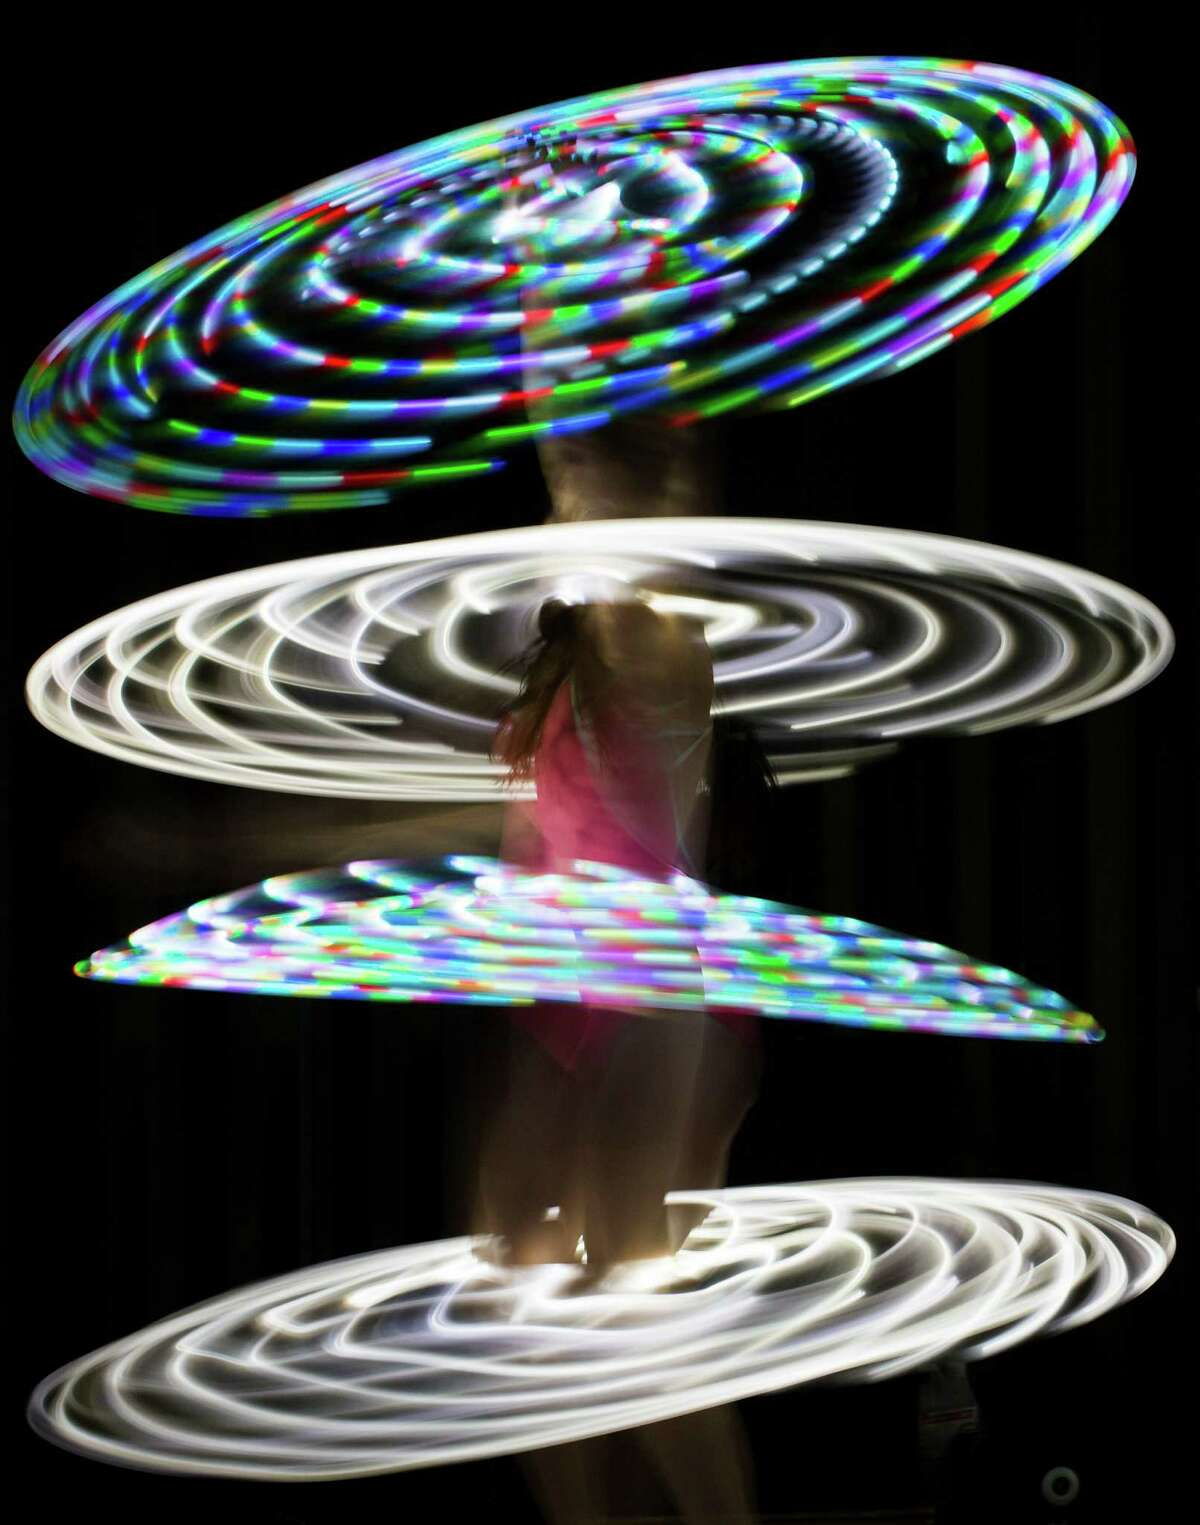 Canadian hooper Rebecca Halls performs with illuminated hula hoops at the Hula Hoop Festival Hoopurbia 2014 in Berlin, Germany, Sunday, June 29, 2014. Hoopurbia 2014 is the third edition of an urban hula hoop festival bringing together hoopers from around the globe for six days of workshops, dance parties and performance showcases with hula hoops.